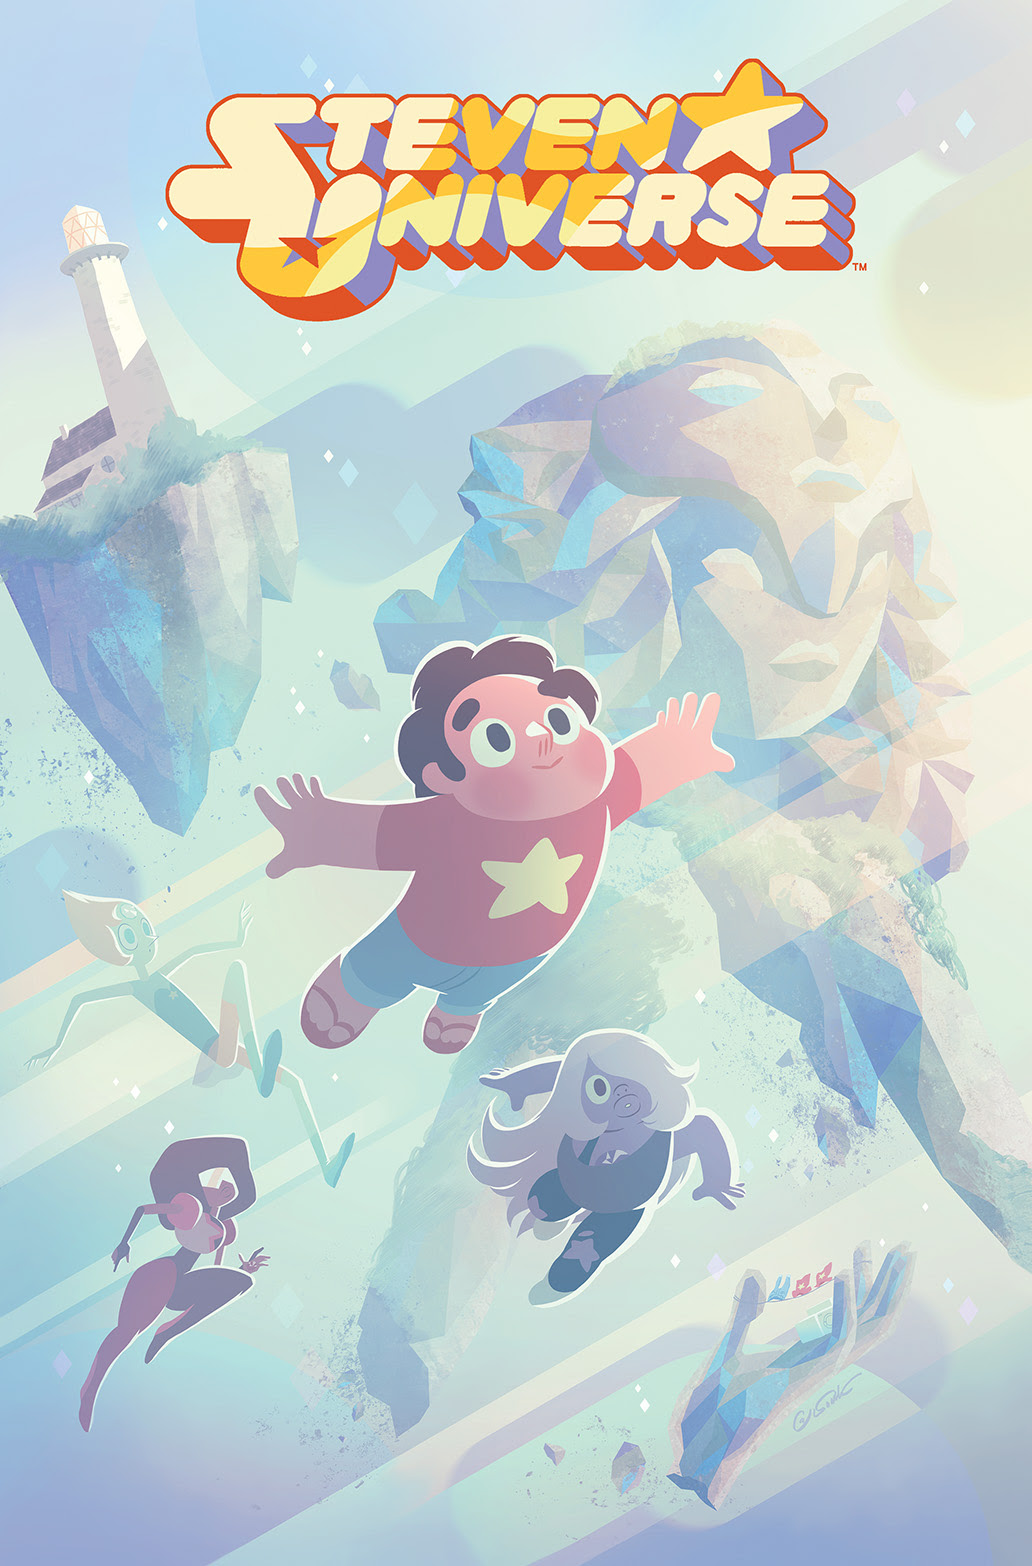 STEVEN UNIVERSE #2 Cover A by George Caltsoudas